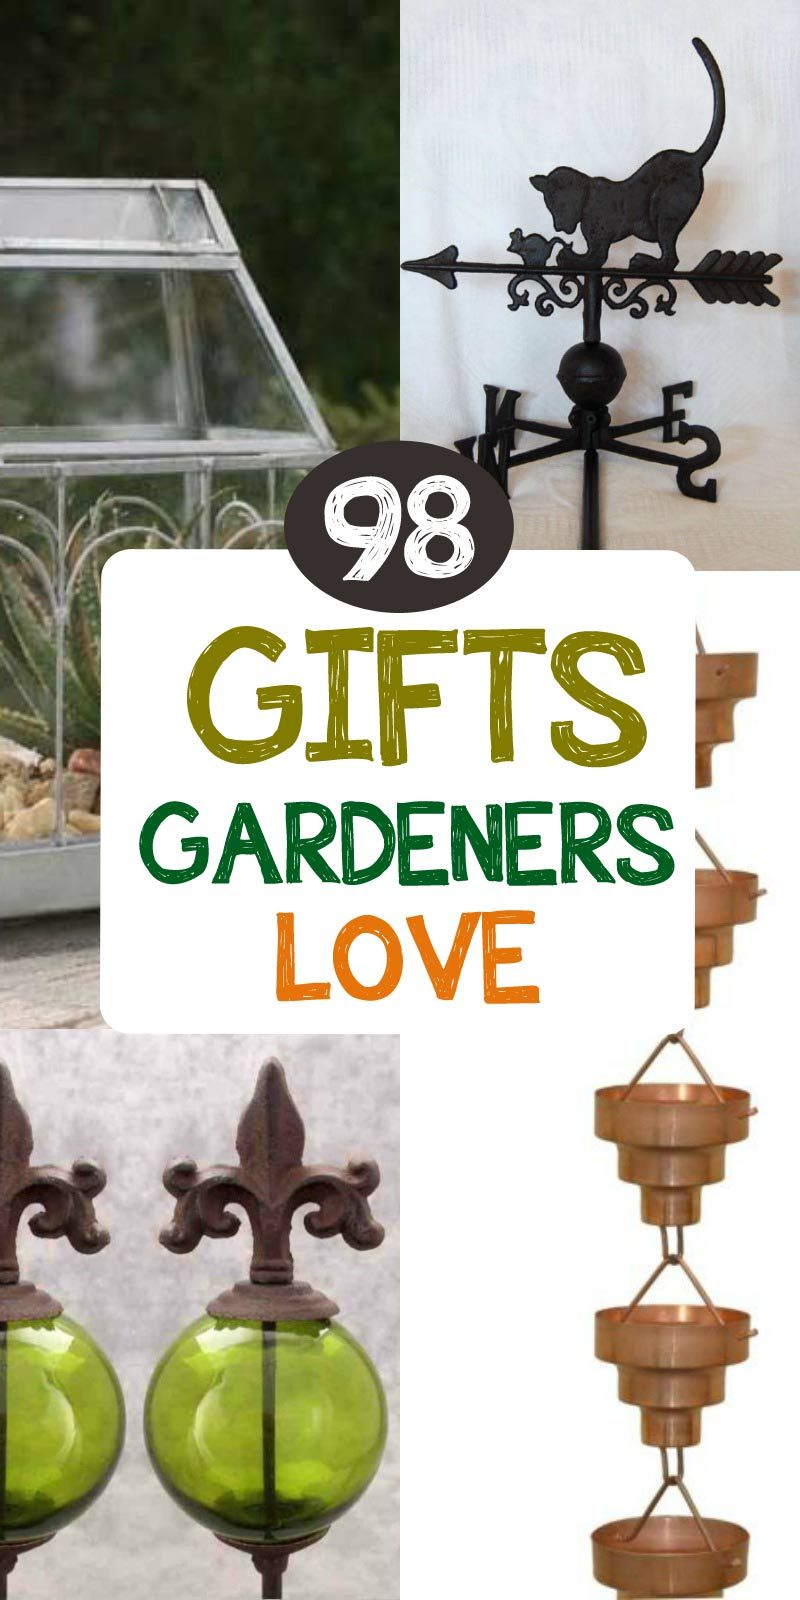 gifts gardeners garden on jacksonperkins for pinterest have images who everything best